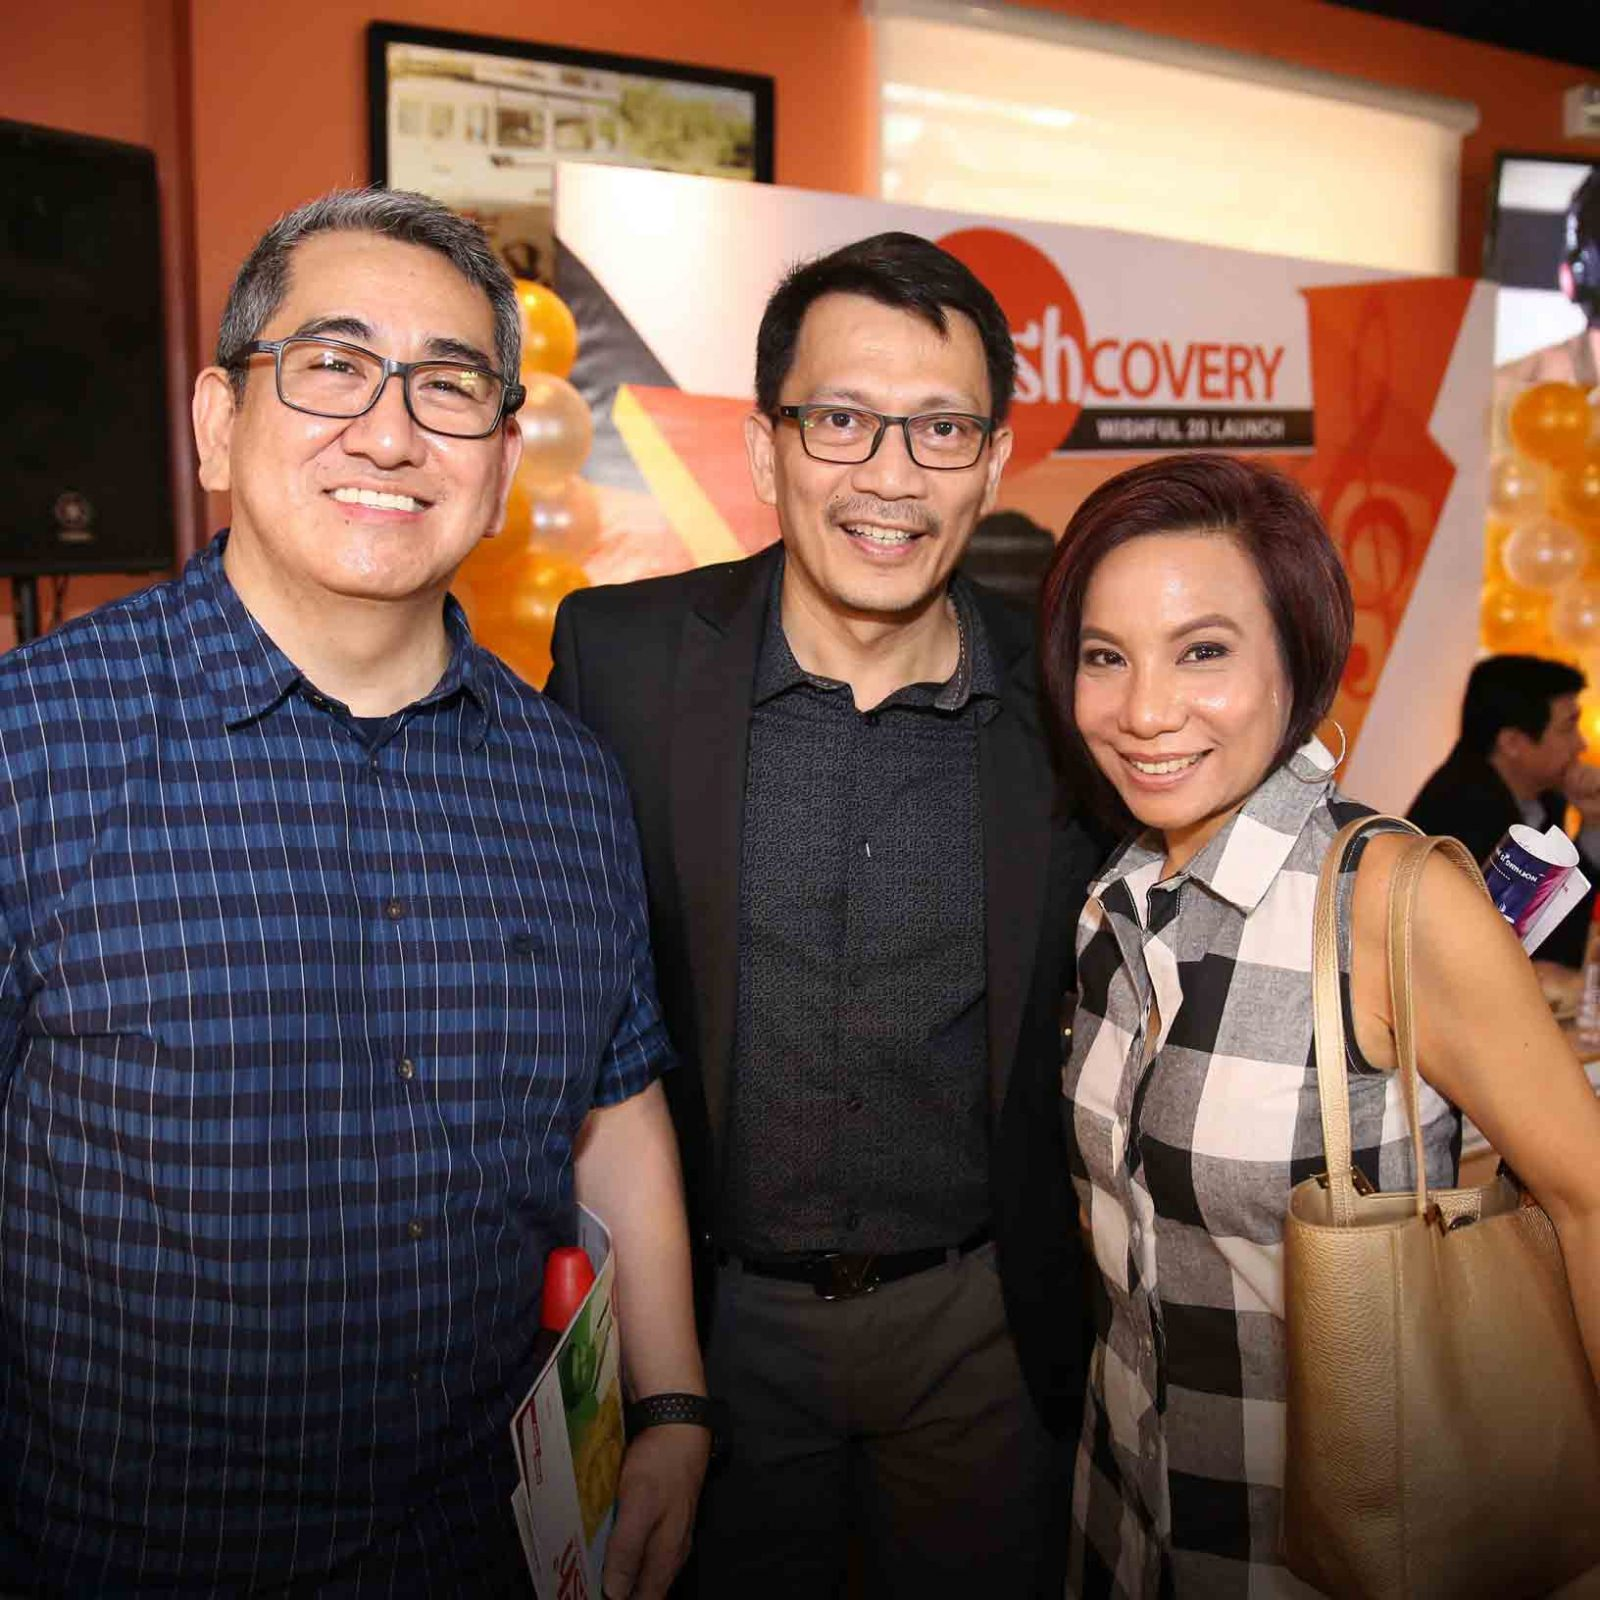 (L-R) Mr. Jungee Marcelo, Kuya Daniel Razon, and Ms. Annie Quinto pose for a quick snapshot during the Wishcovery press conference held on August 31, 2017.   (Photo courtesy of Photville International)